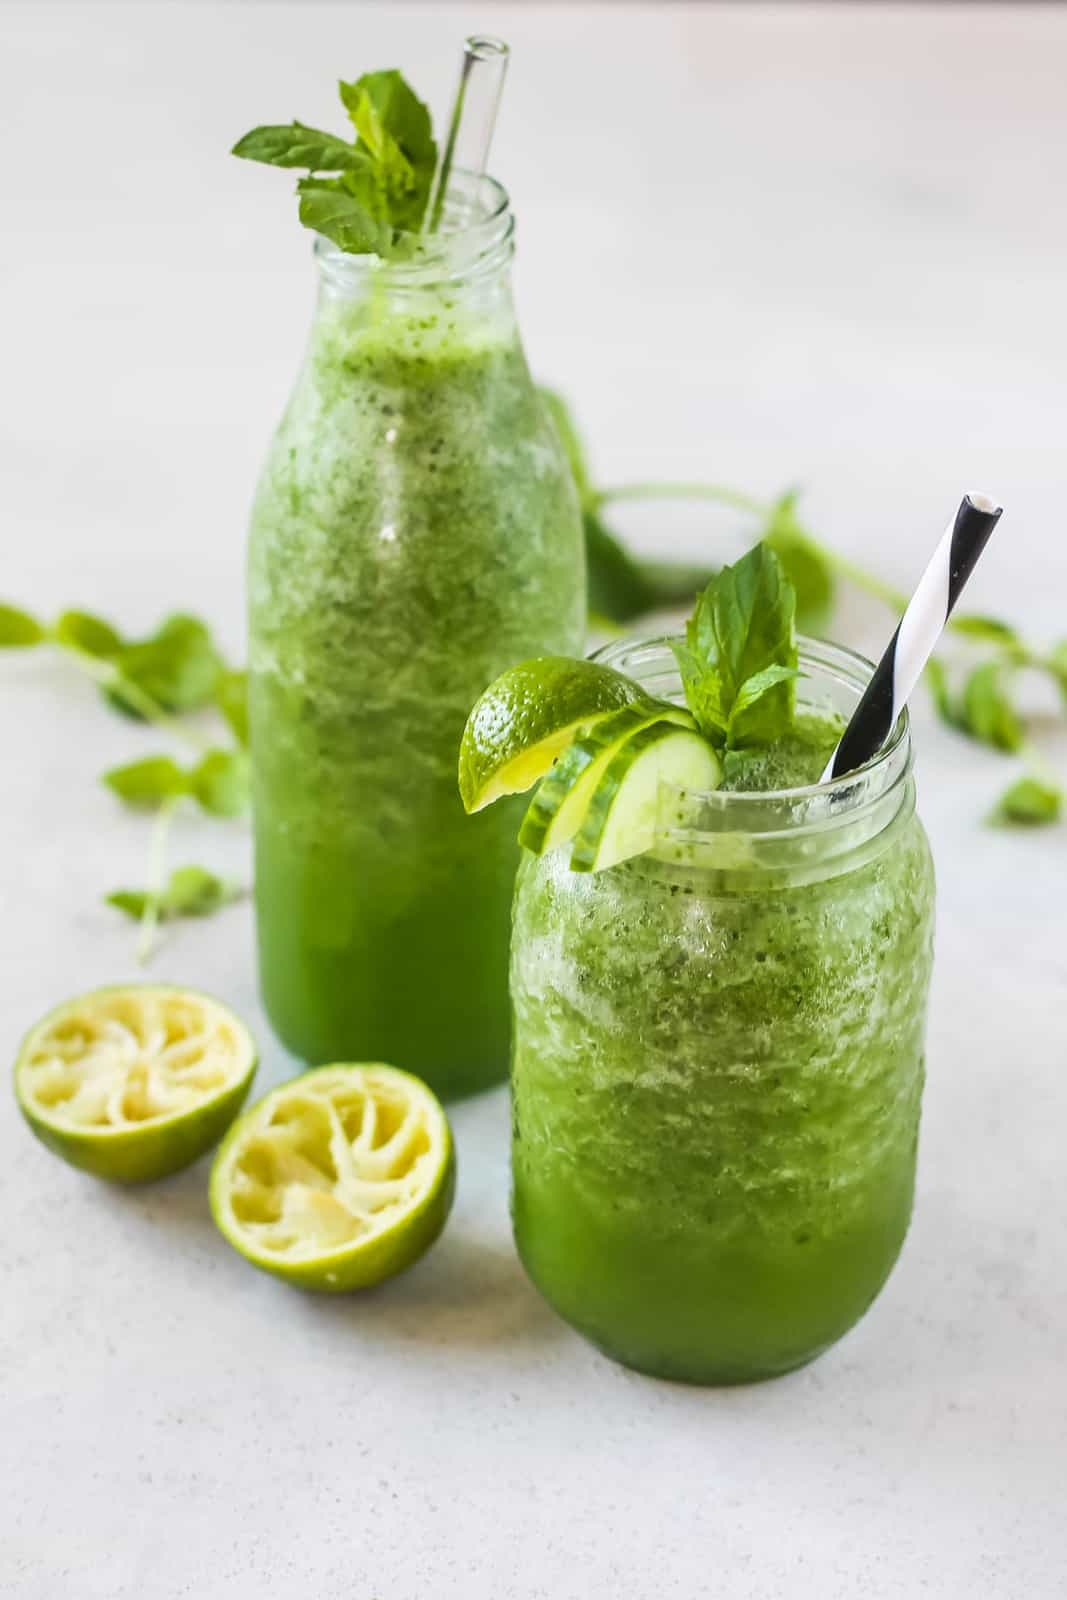 Two glasses filled with bright green cucumber slush with sprigs of mint and slices of lime on top